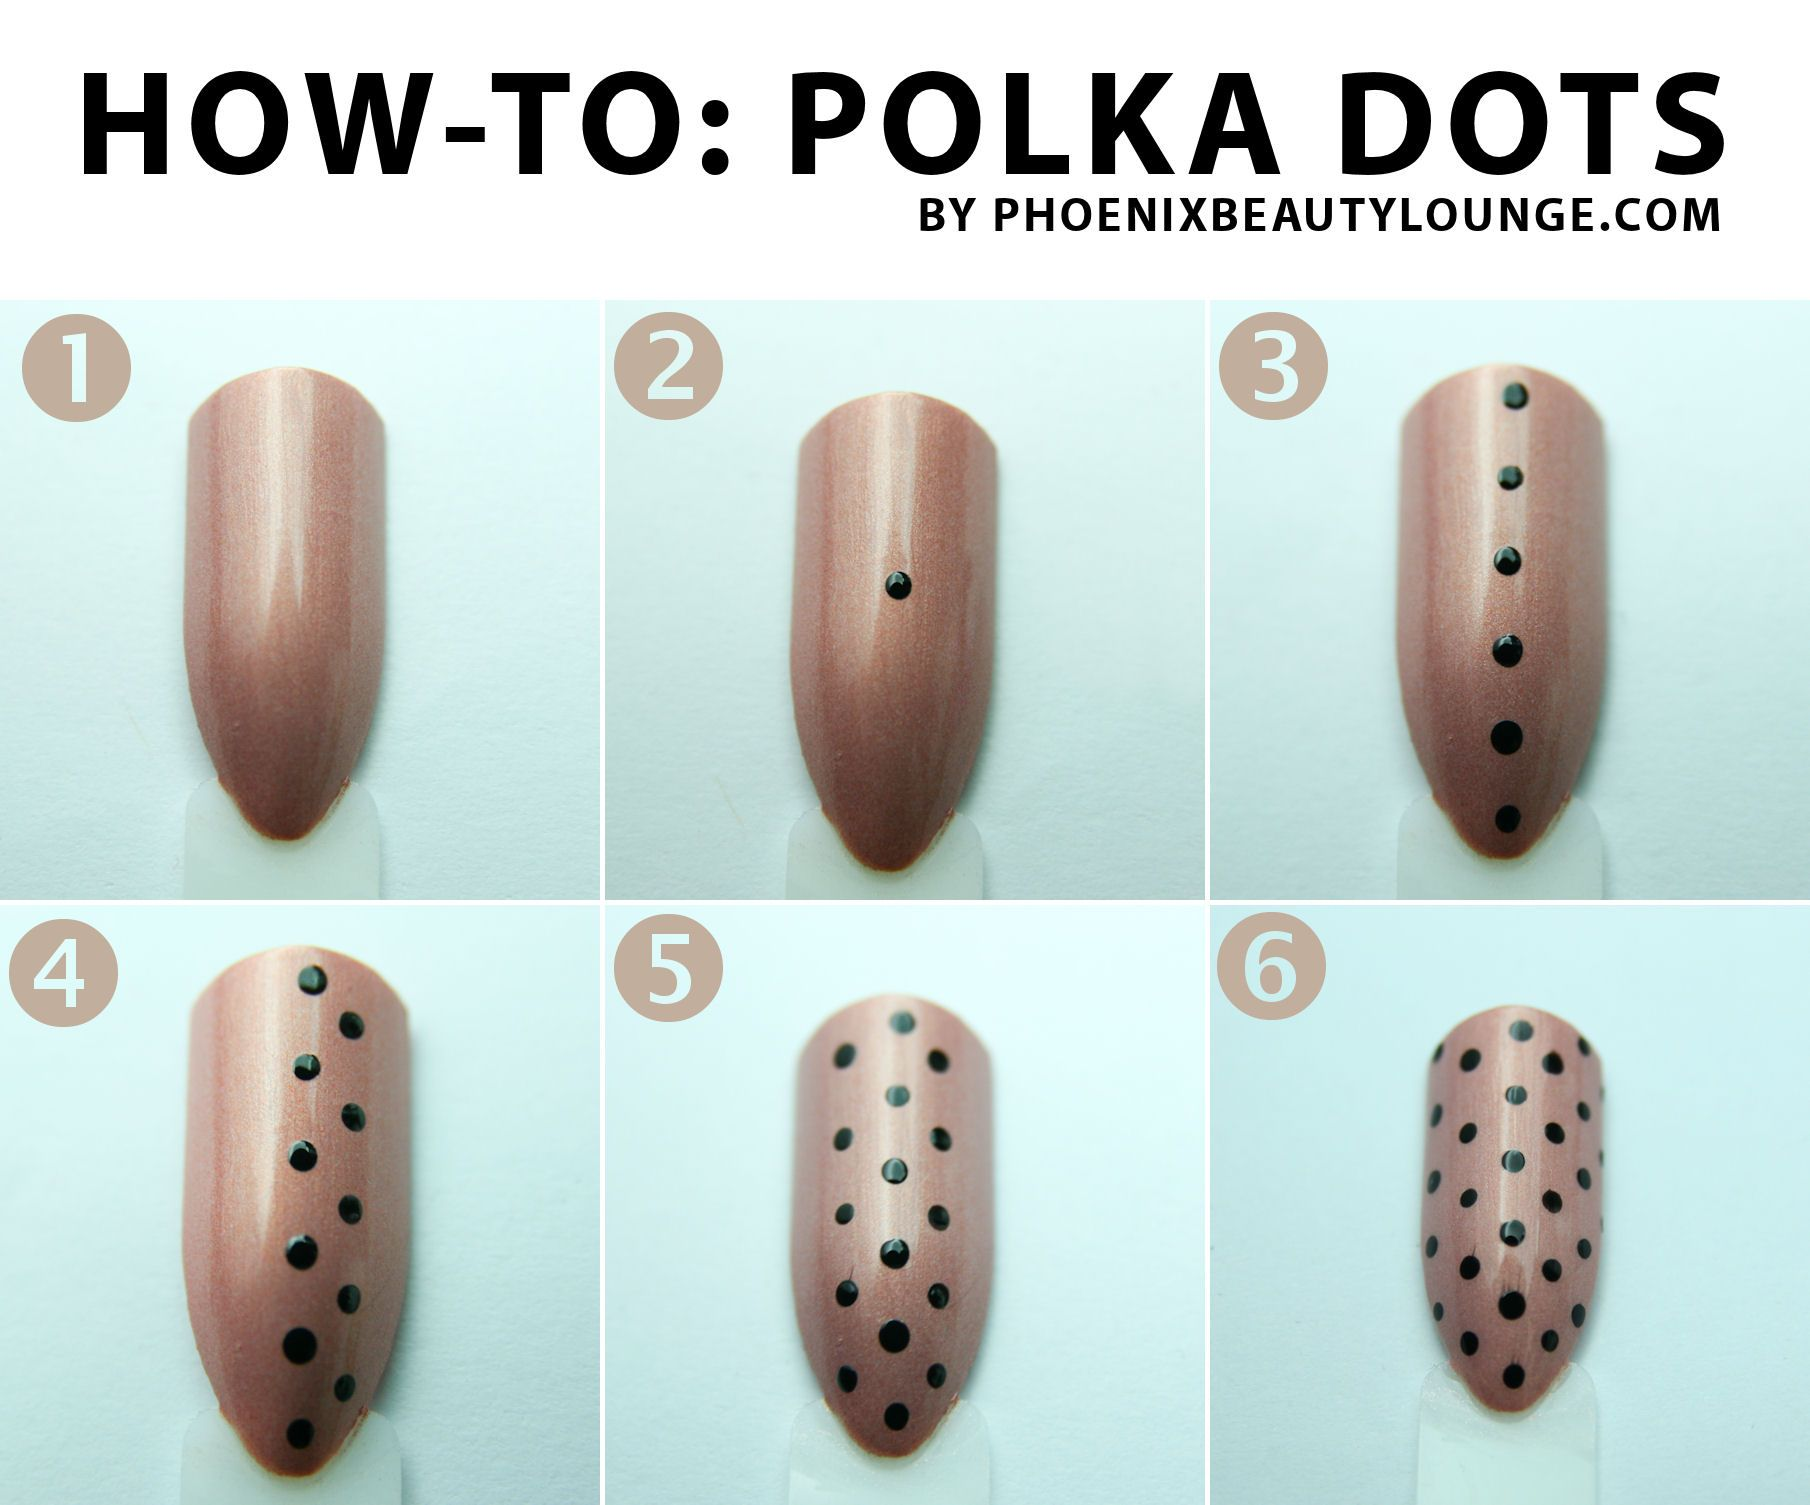 Forum on this topic: How to Do Polka Dot Nail Art, how-to-do-polka-dot-nail-art/